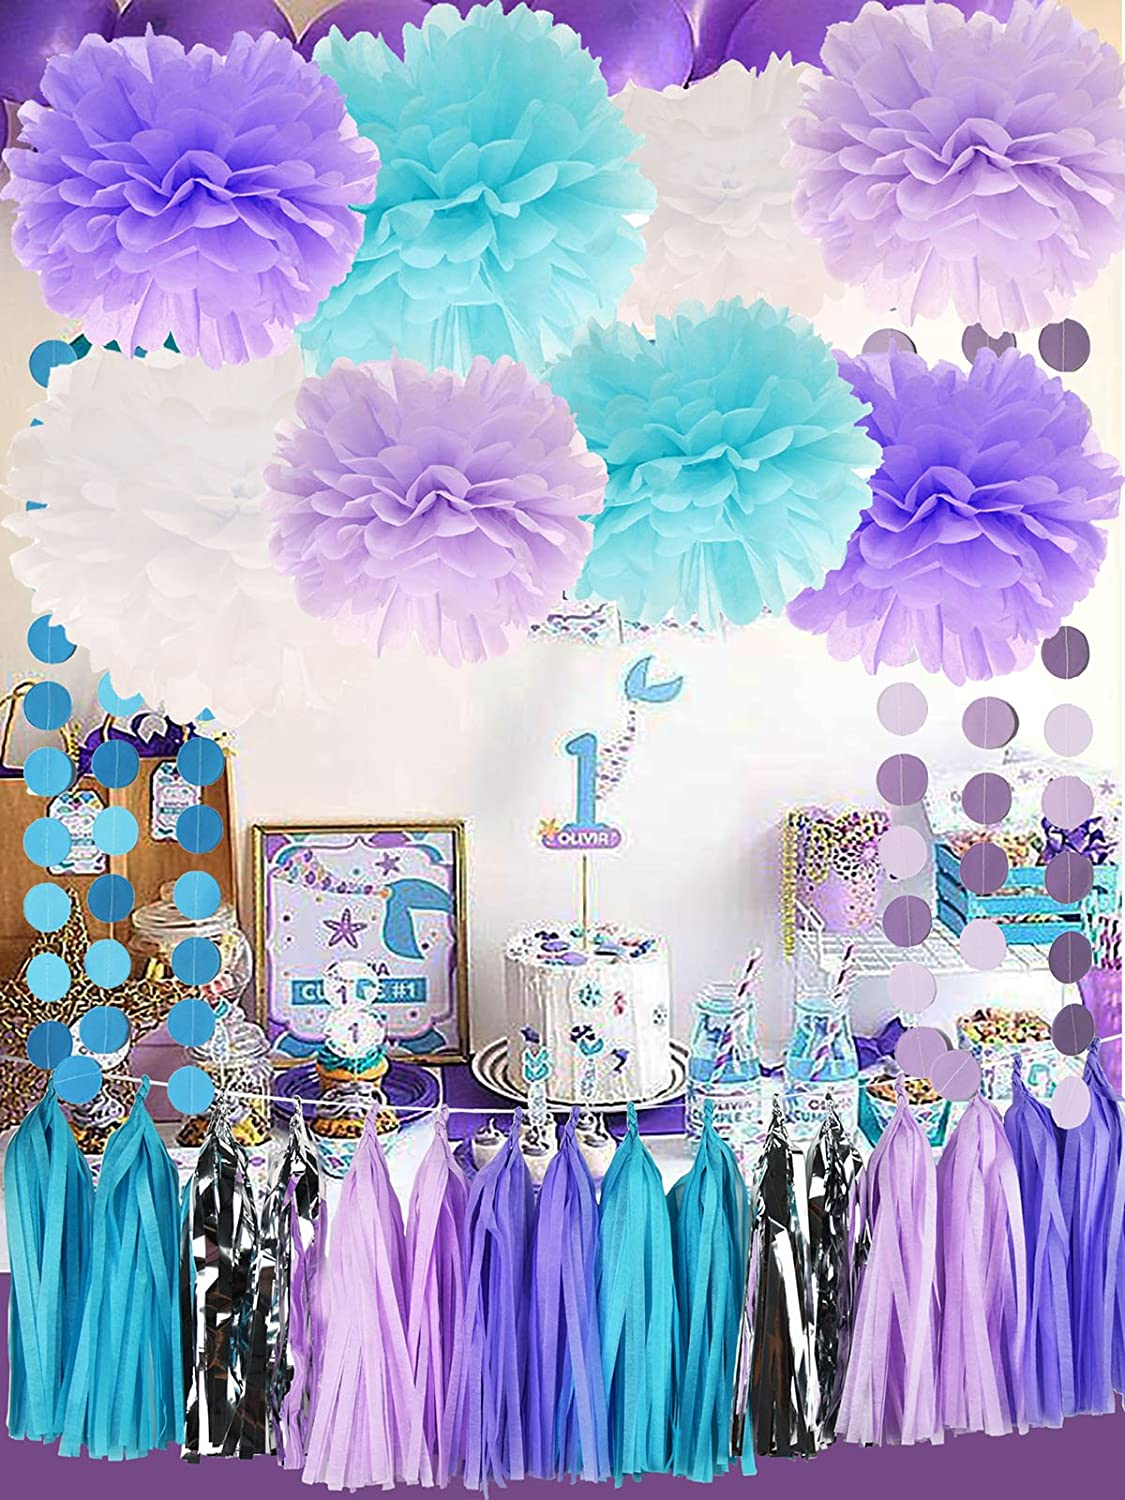 Mermaid Party Decorations Under The Sea Party Decorations Under The Sea Party Little Mermaid Party Mermaid Mermaid Party Under The Sea